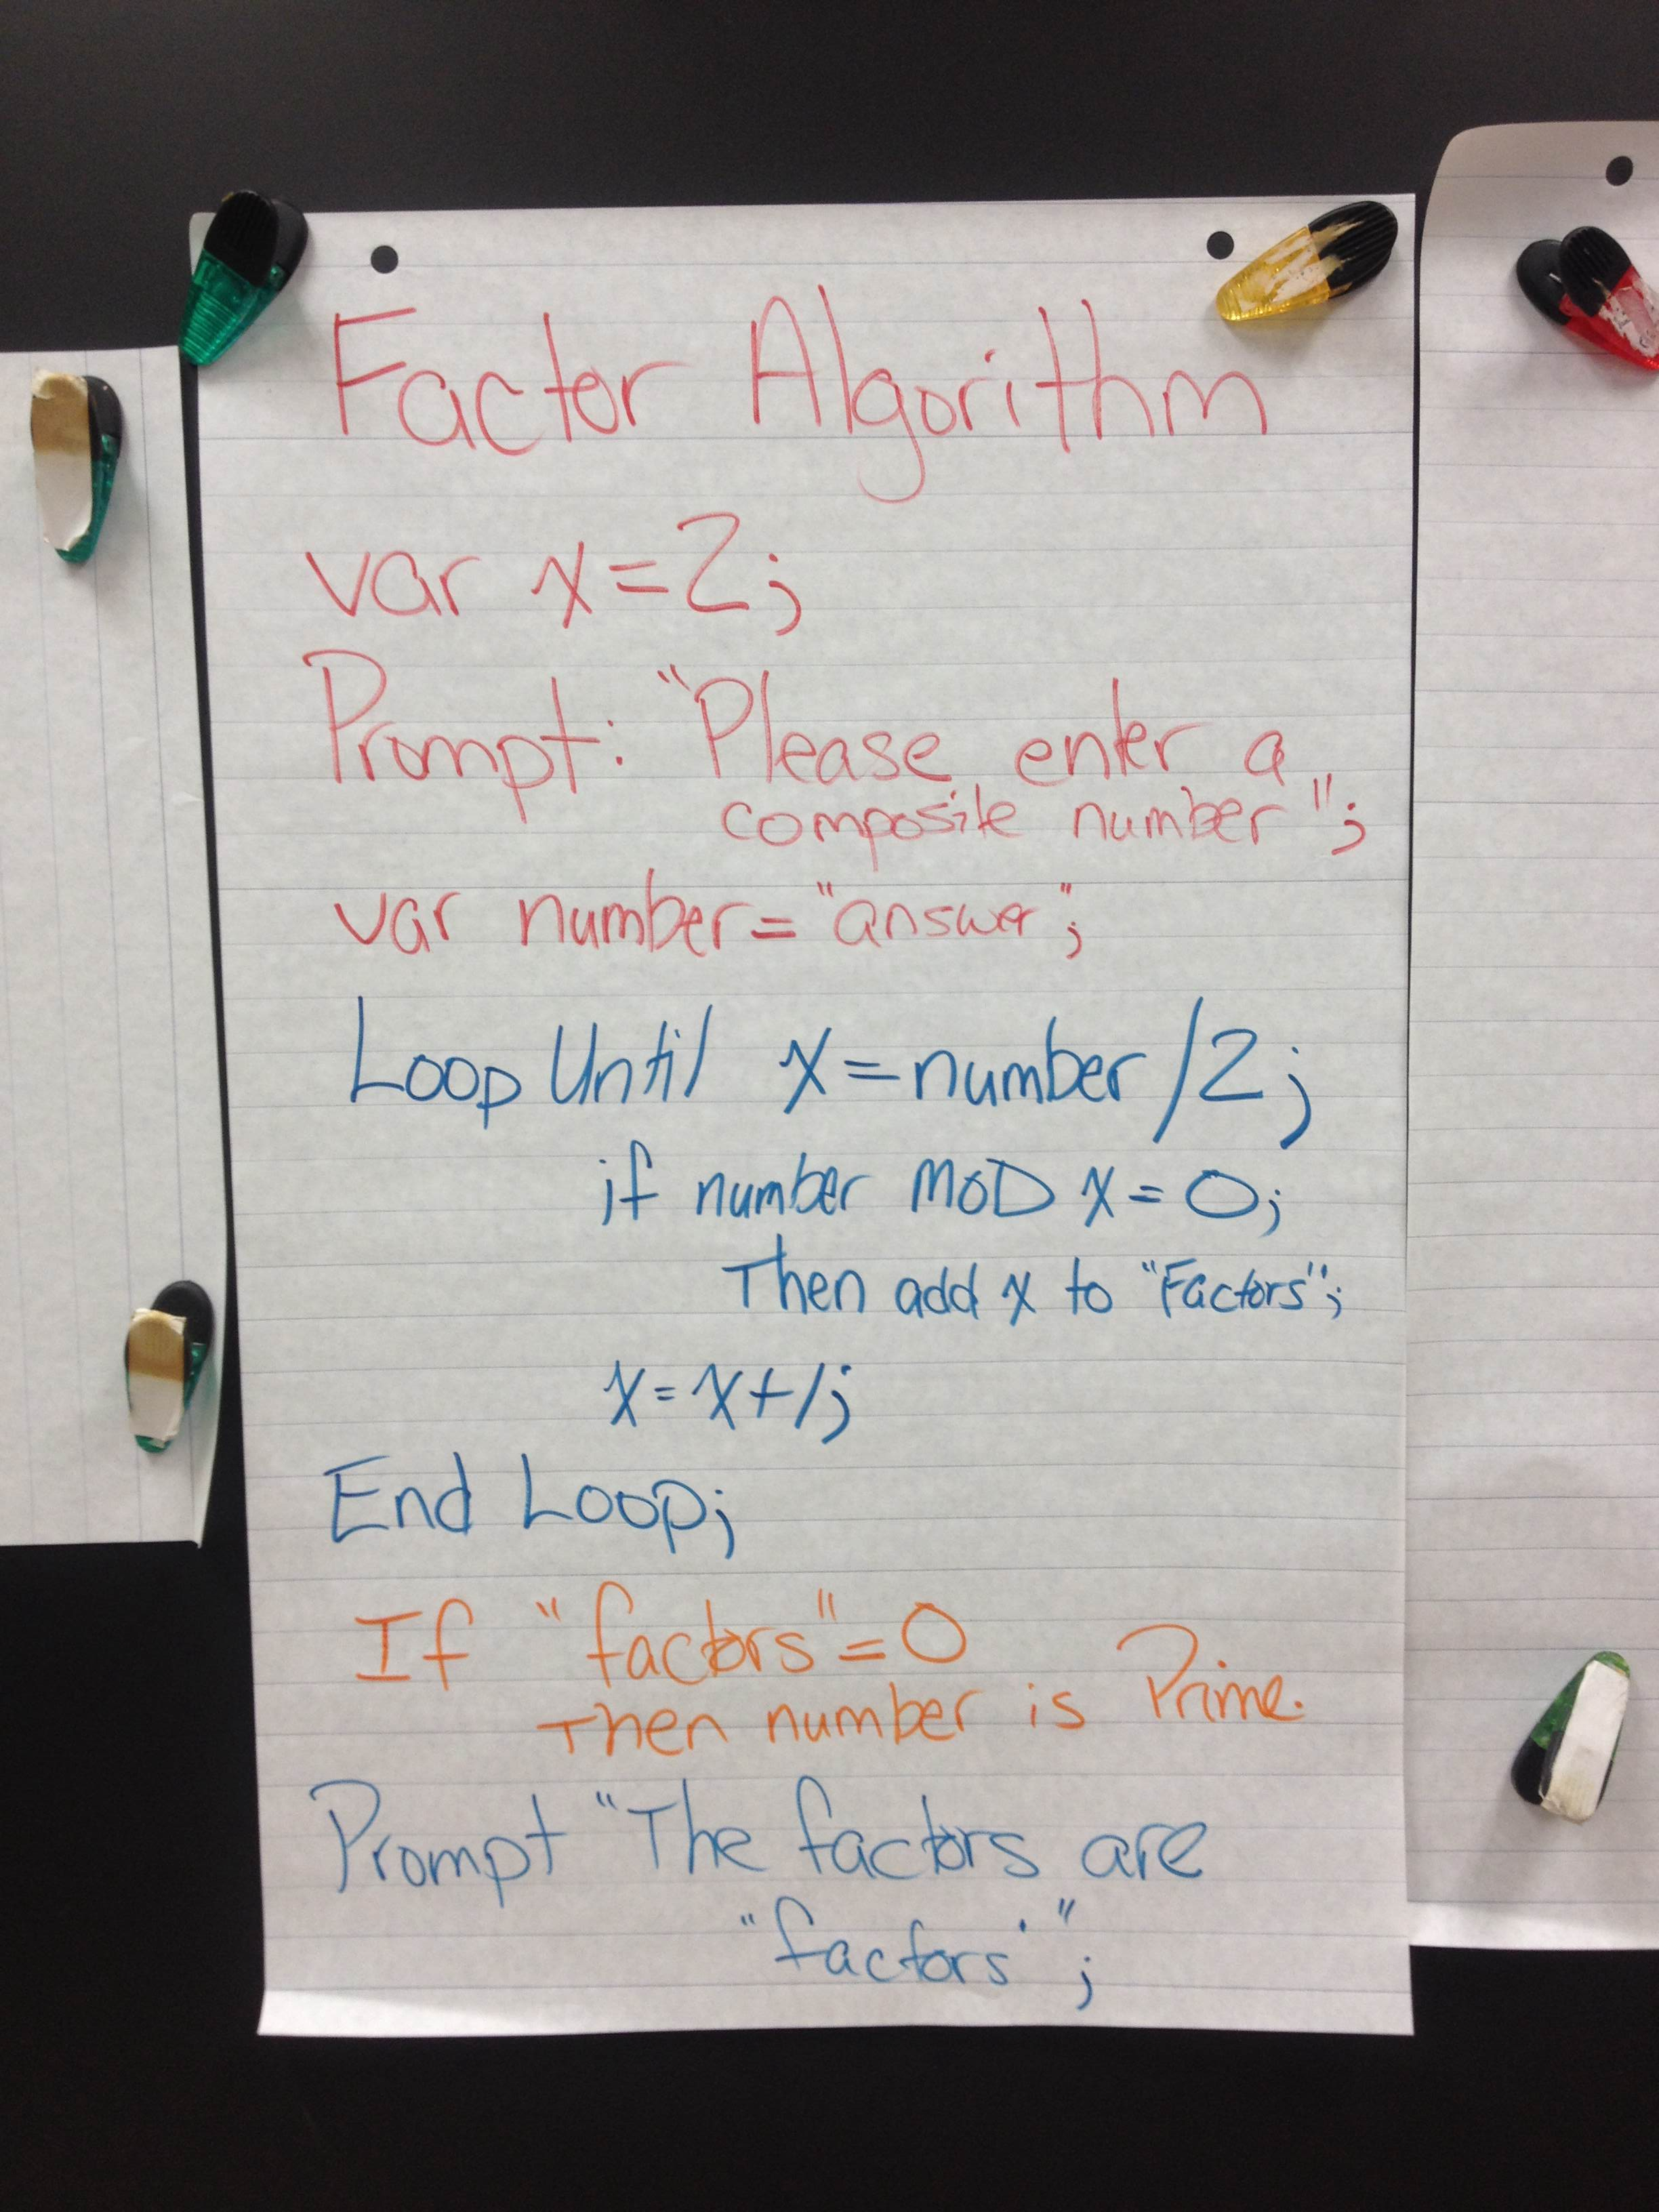 Finding The Factors of a Number Using Computer Science by @mraspinall #edtech